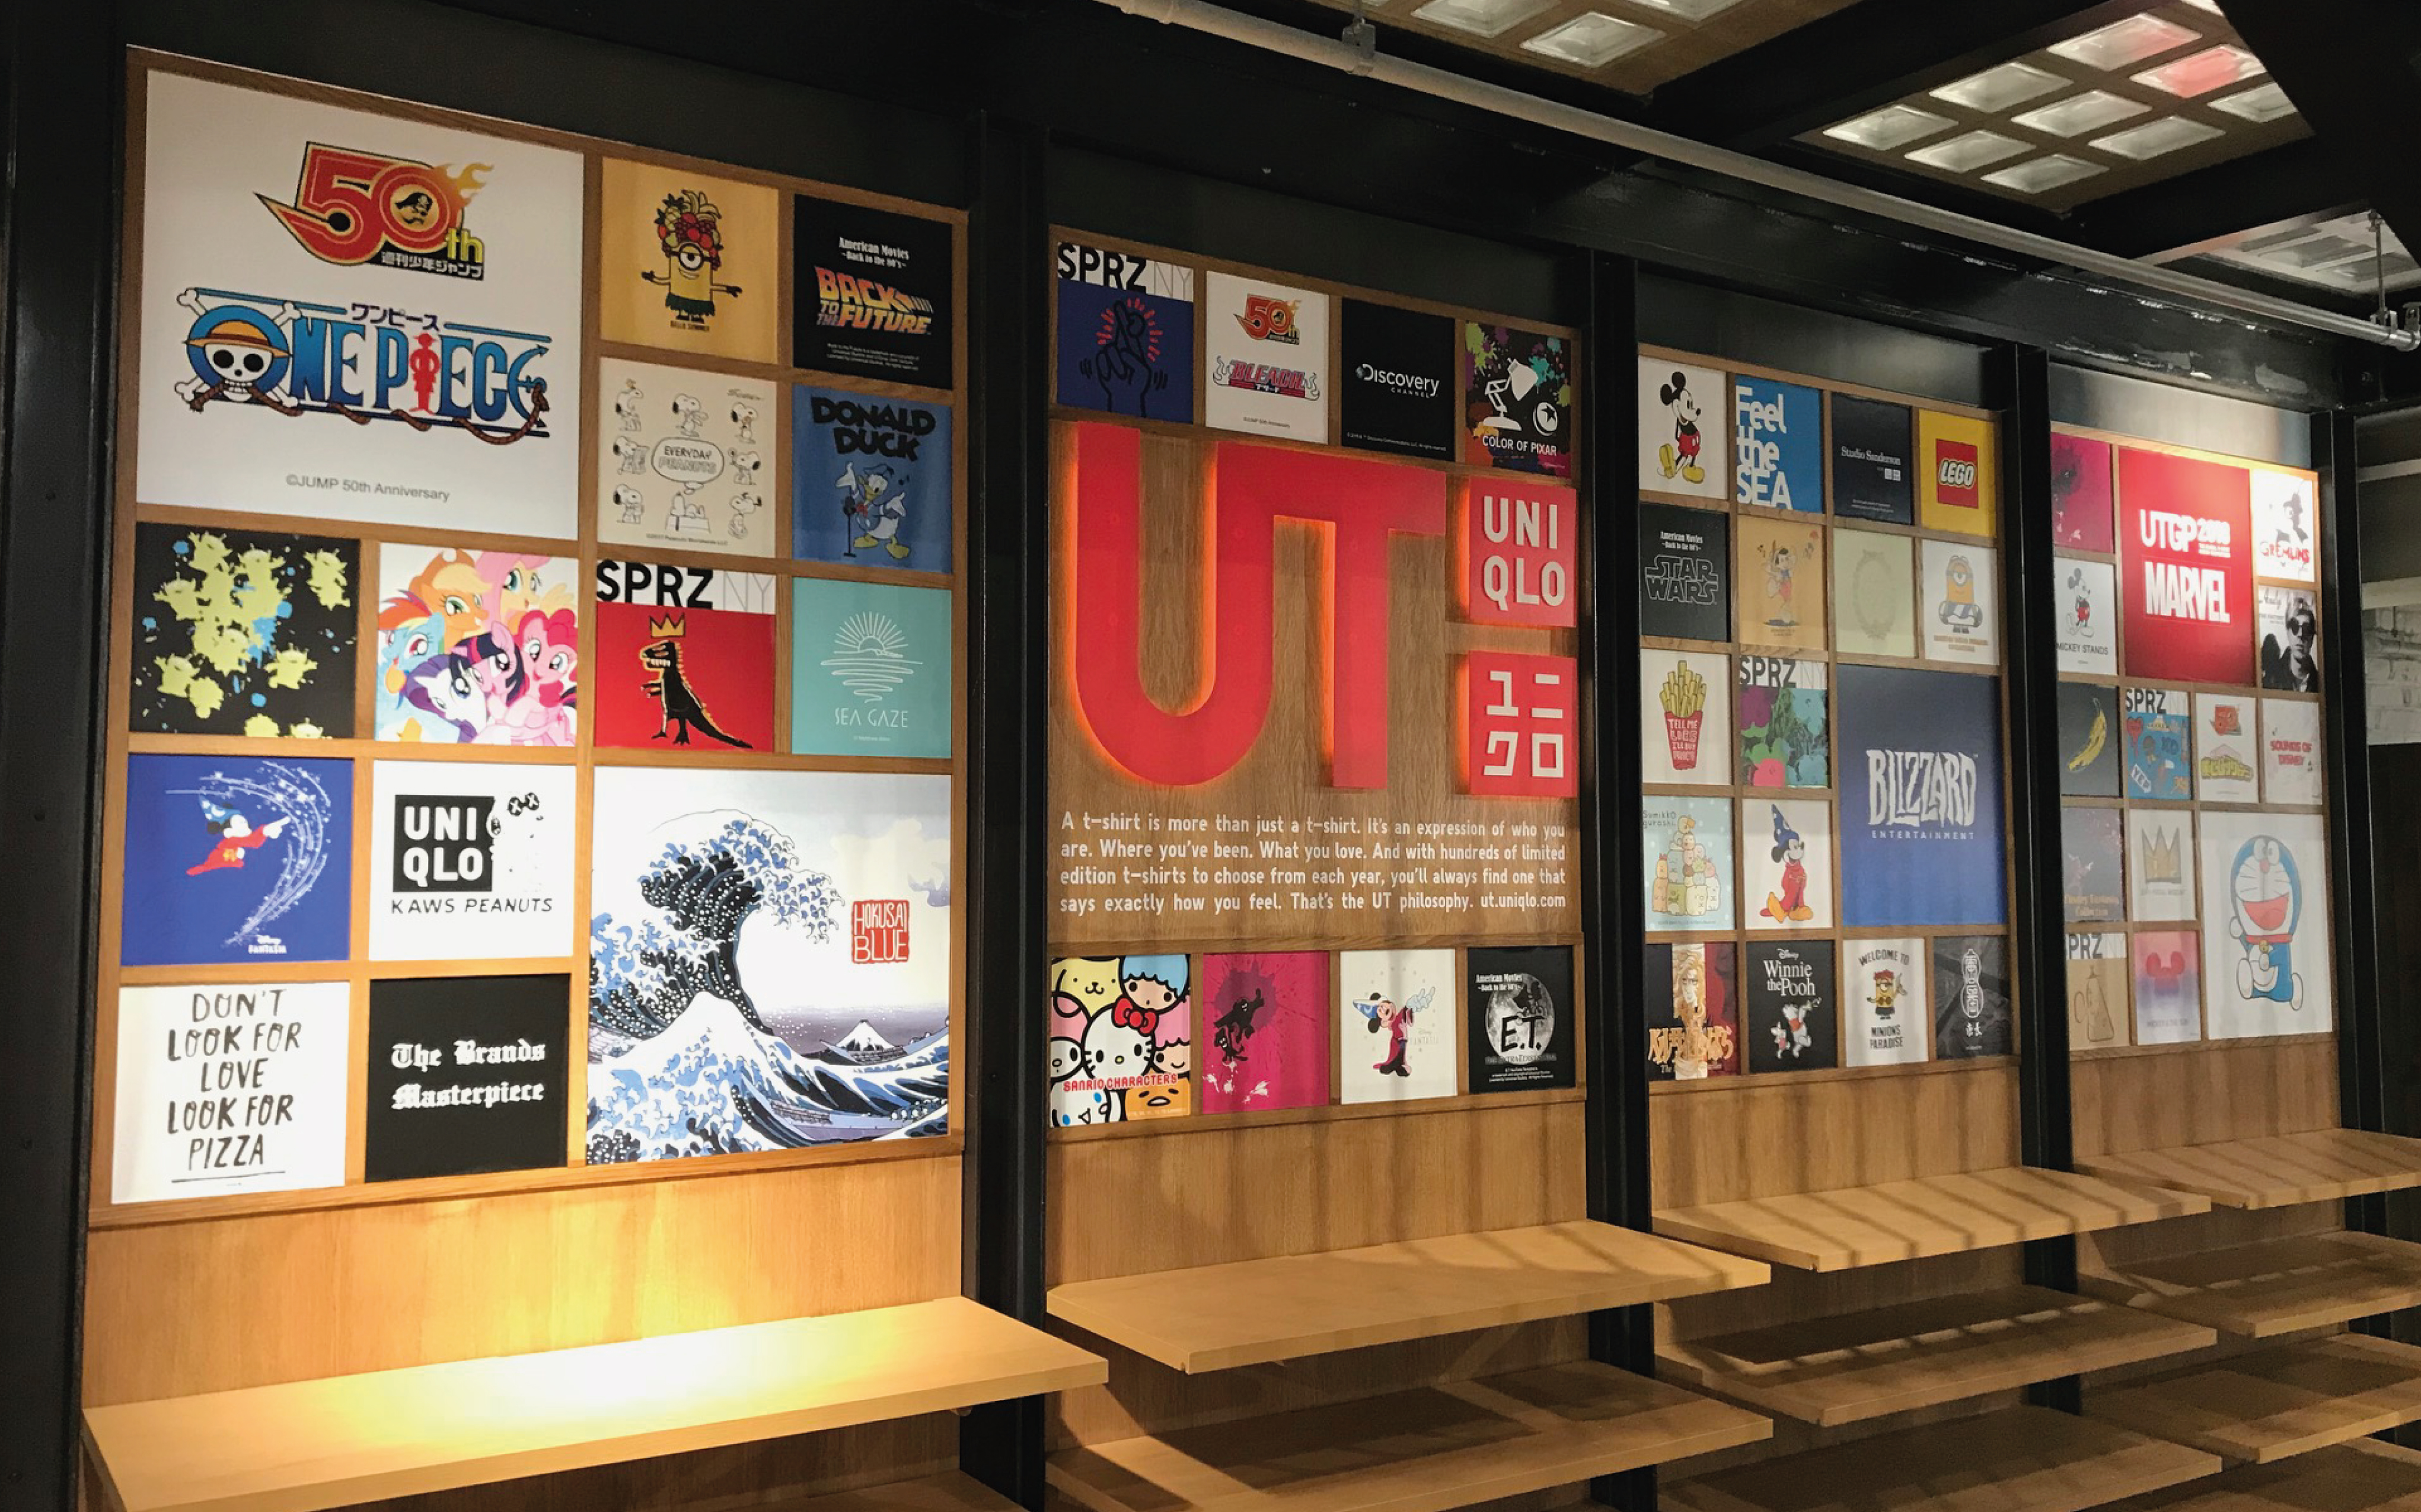 UNIQLO_THIRD_FLOOR_UT